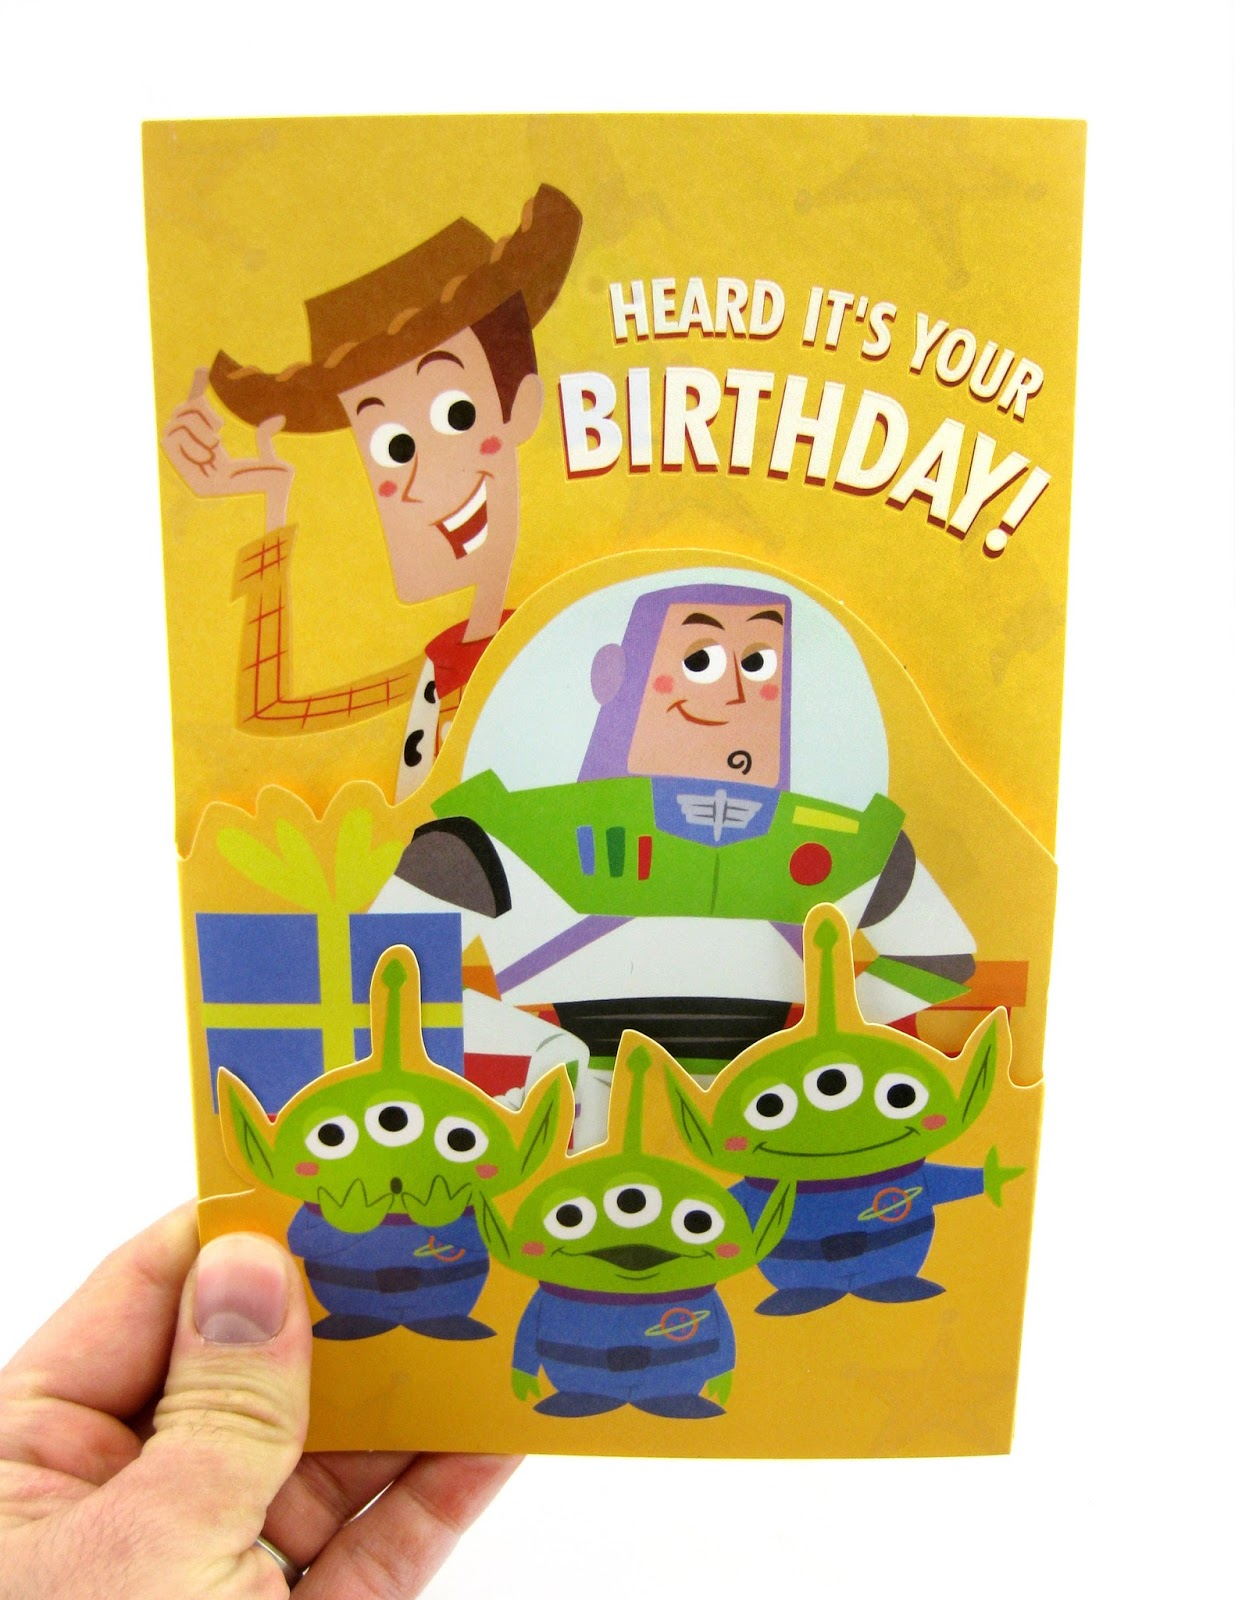 Dan the Pixar Fan Toy Story Birthday Card Target 2016 – Buzz Lightyear Birthday Card